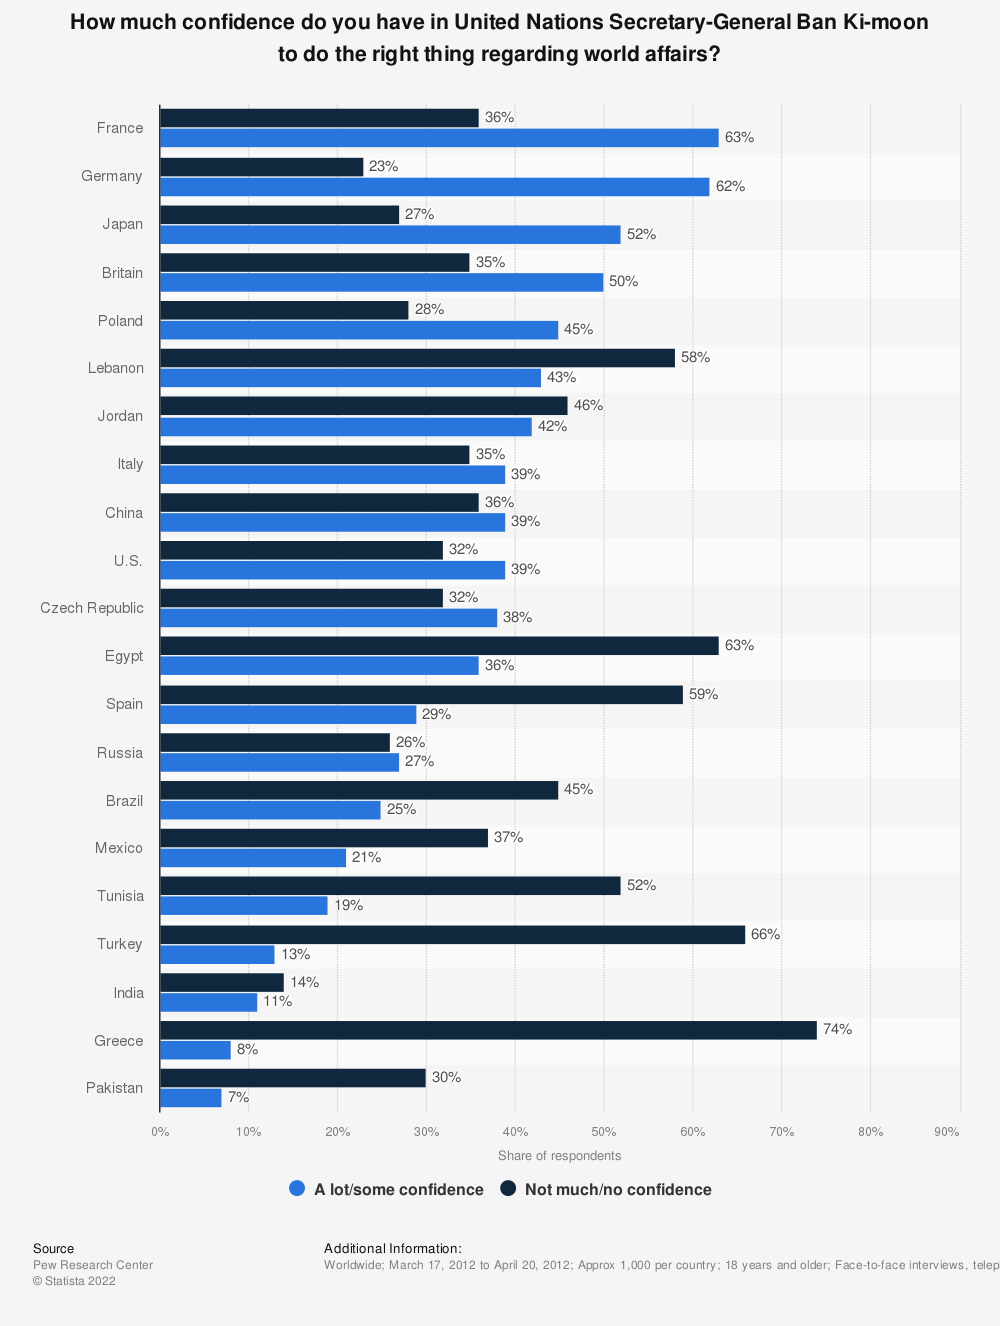 Statistic: How much confidence do you have in United Nations Secretary-General Ban Ki-moon to do the right thing regarding world affairs? | Statista